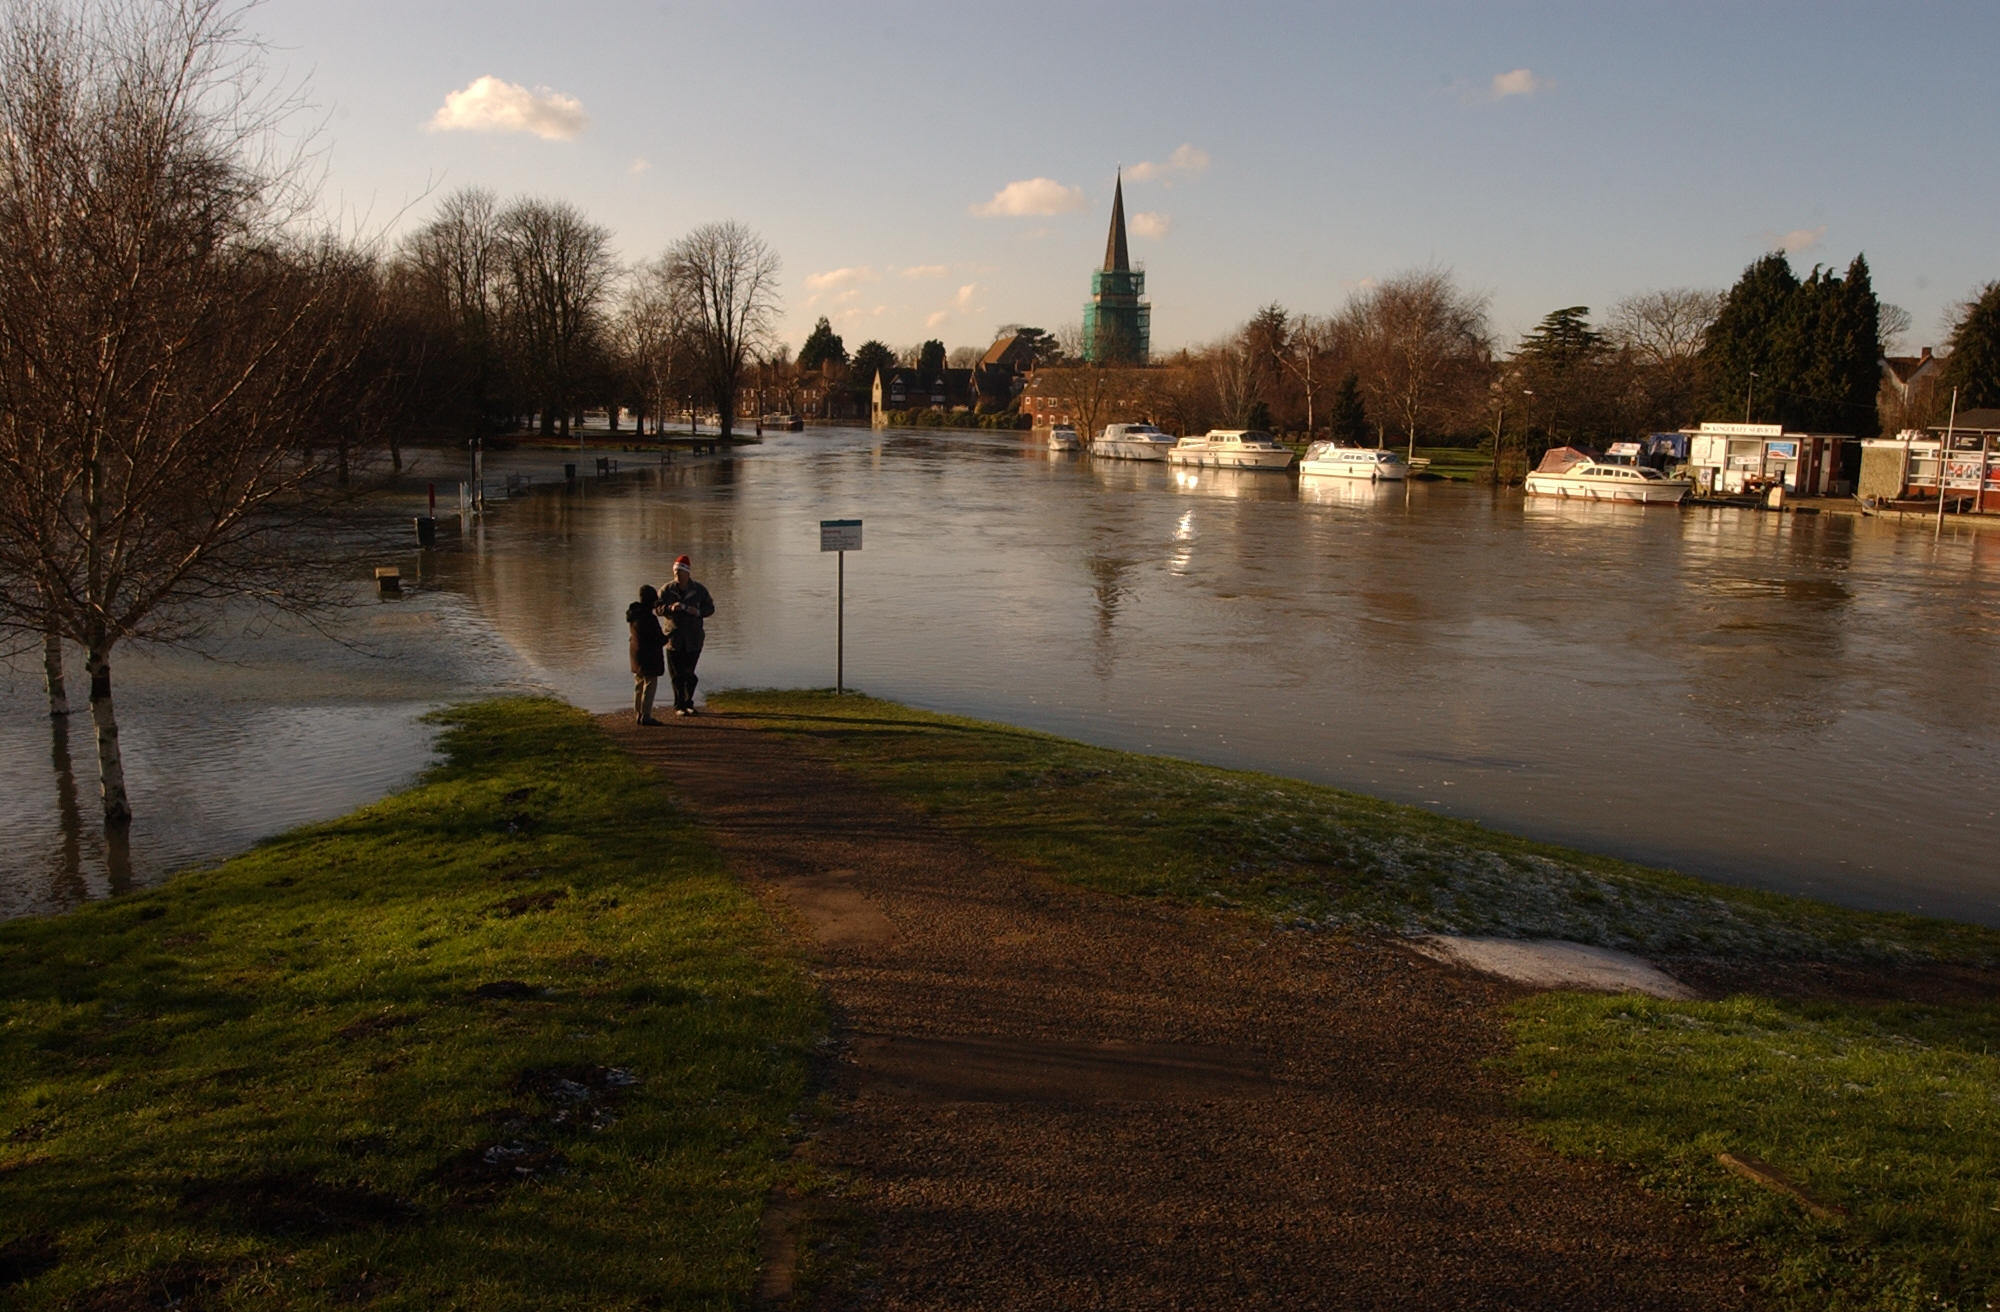 Abingdon flood scheme Car parks by Abingdon Bridge Tow Path in Bridge Street flooded in 2003. Pic By Andy Cooper